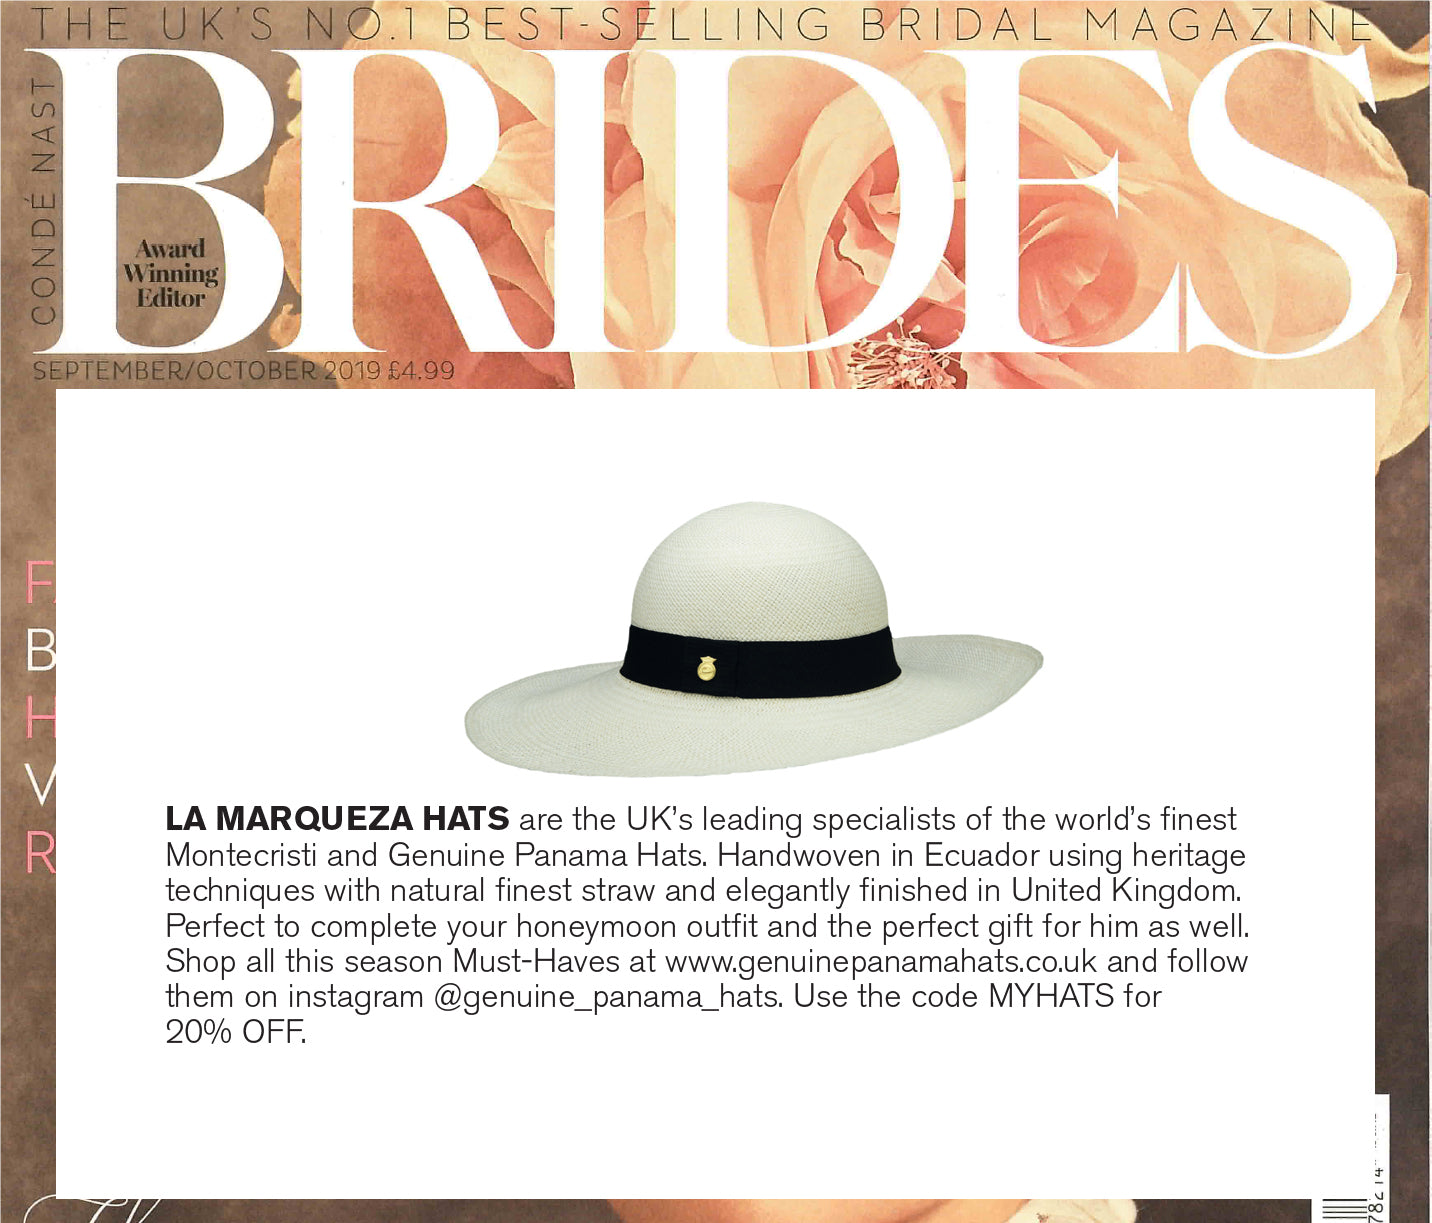 AS FEATURED IN BRIDES MAGAZINE - LA MARQUEZA HATS, SEPTEMBER/OCTOBER ISSUE 2019